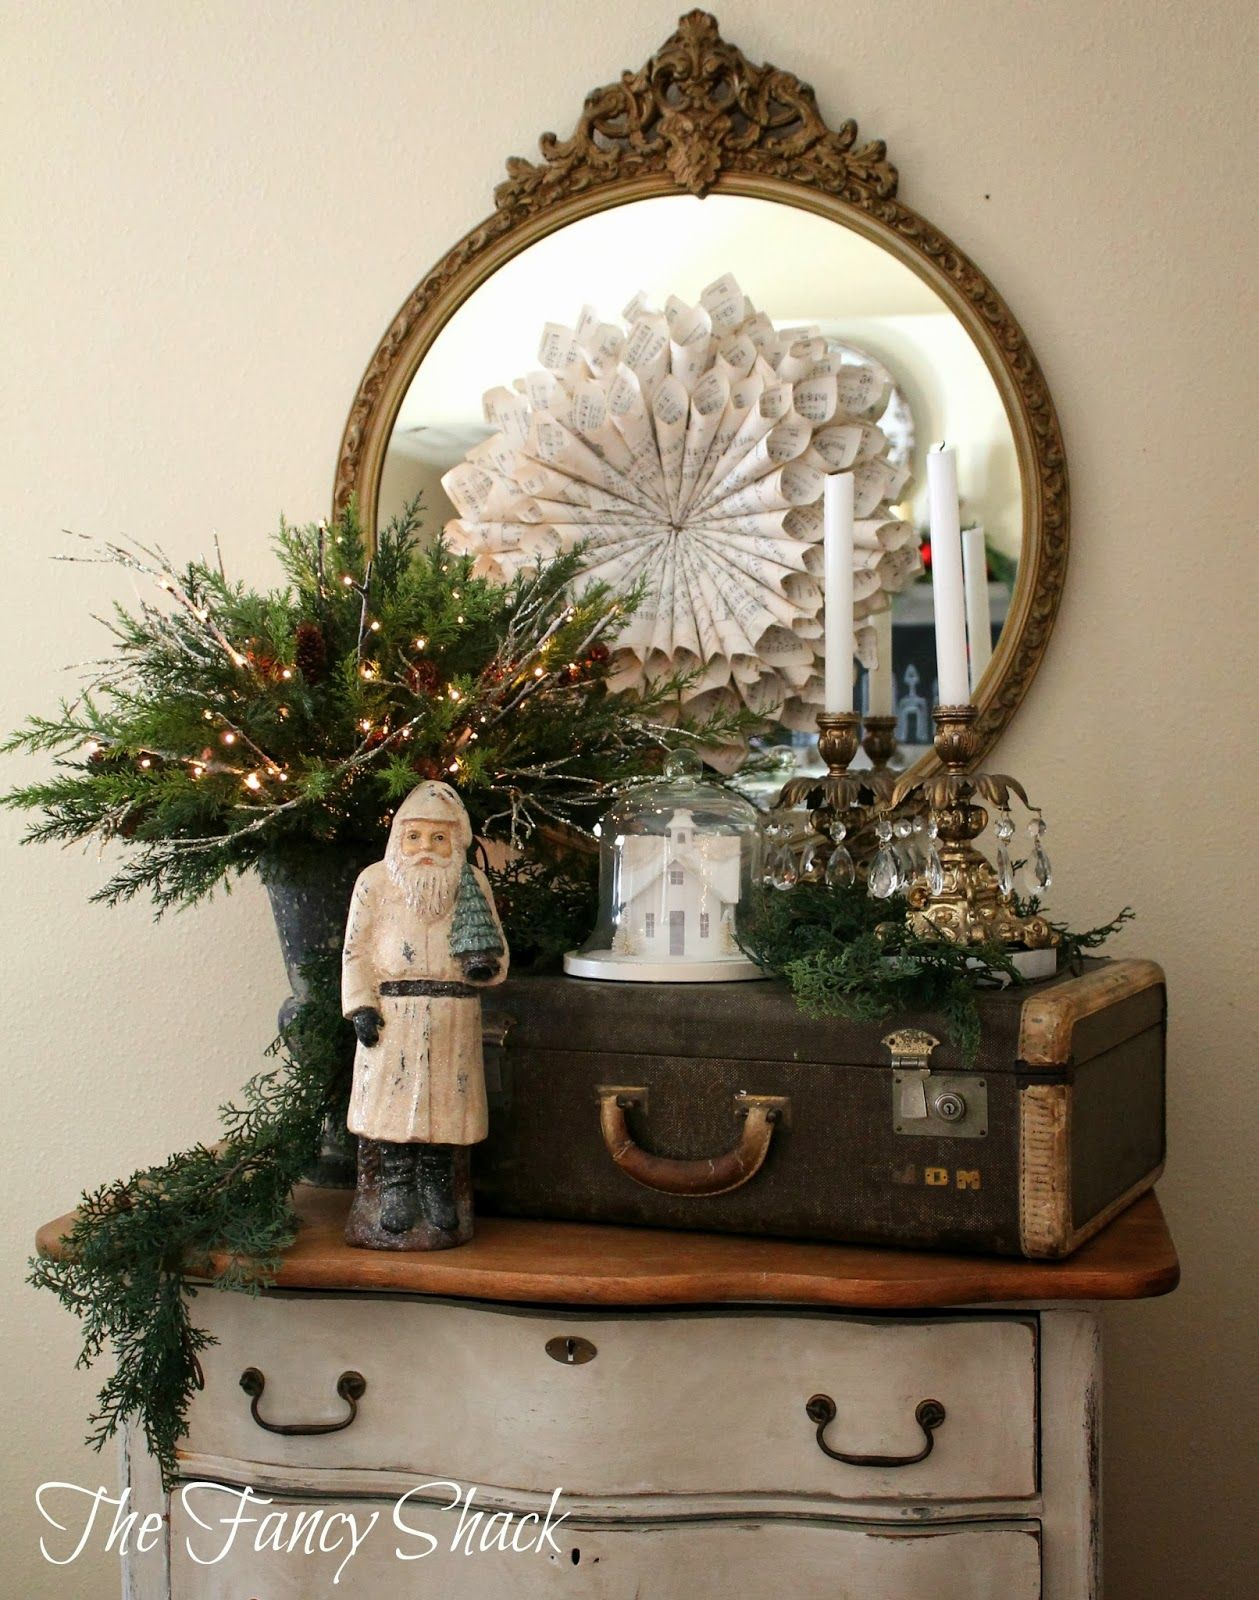 Vintage Decorative Suitcases Love The Mix Of Christmas And Vintage Items Love The